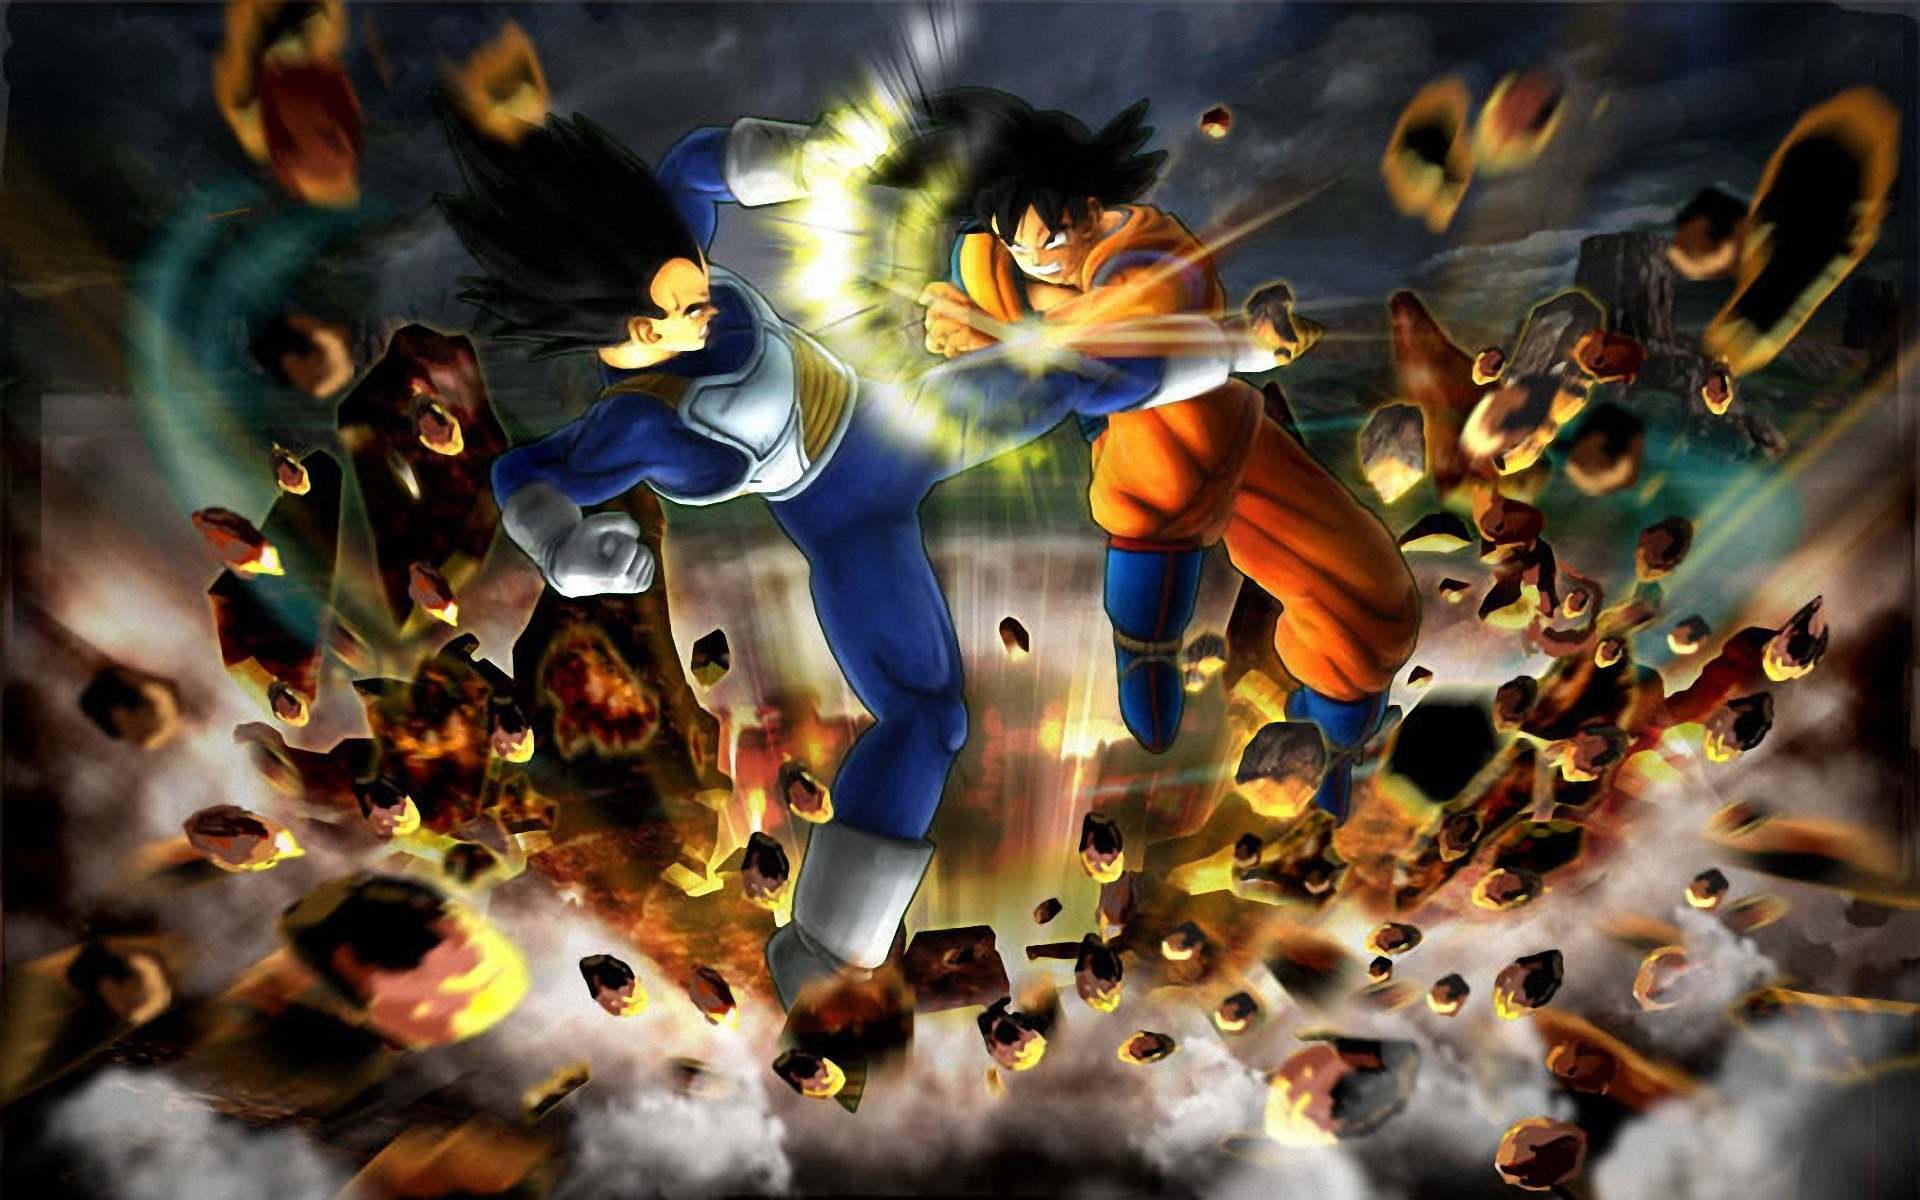 Dragon Ball Z Wallpaper Versus Background